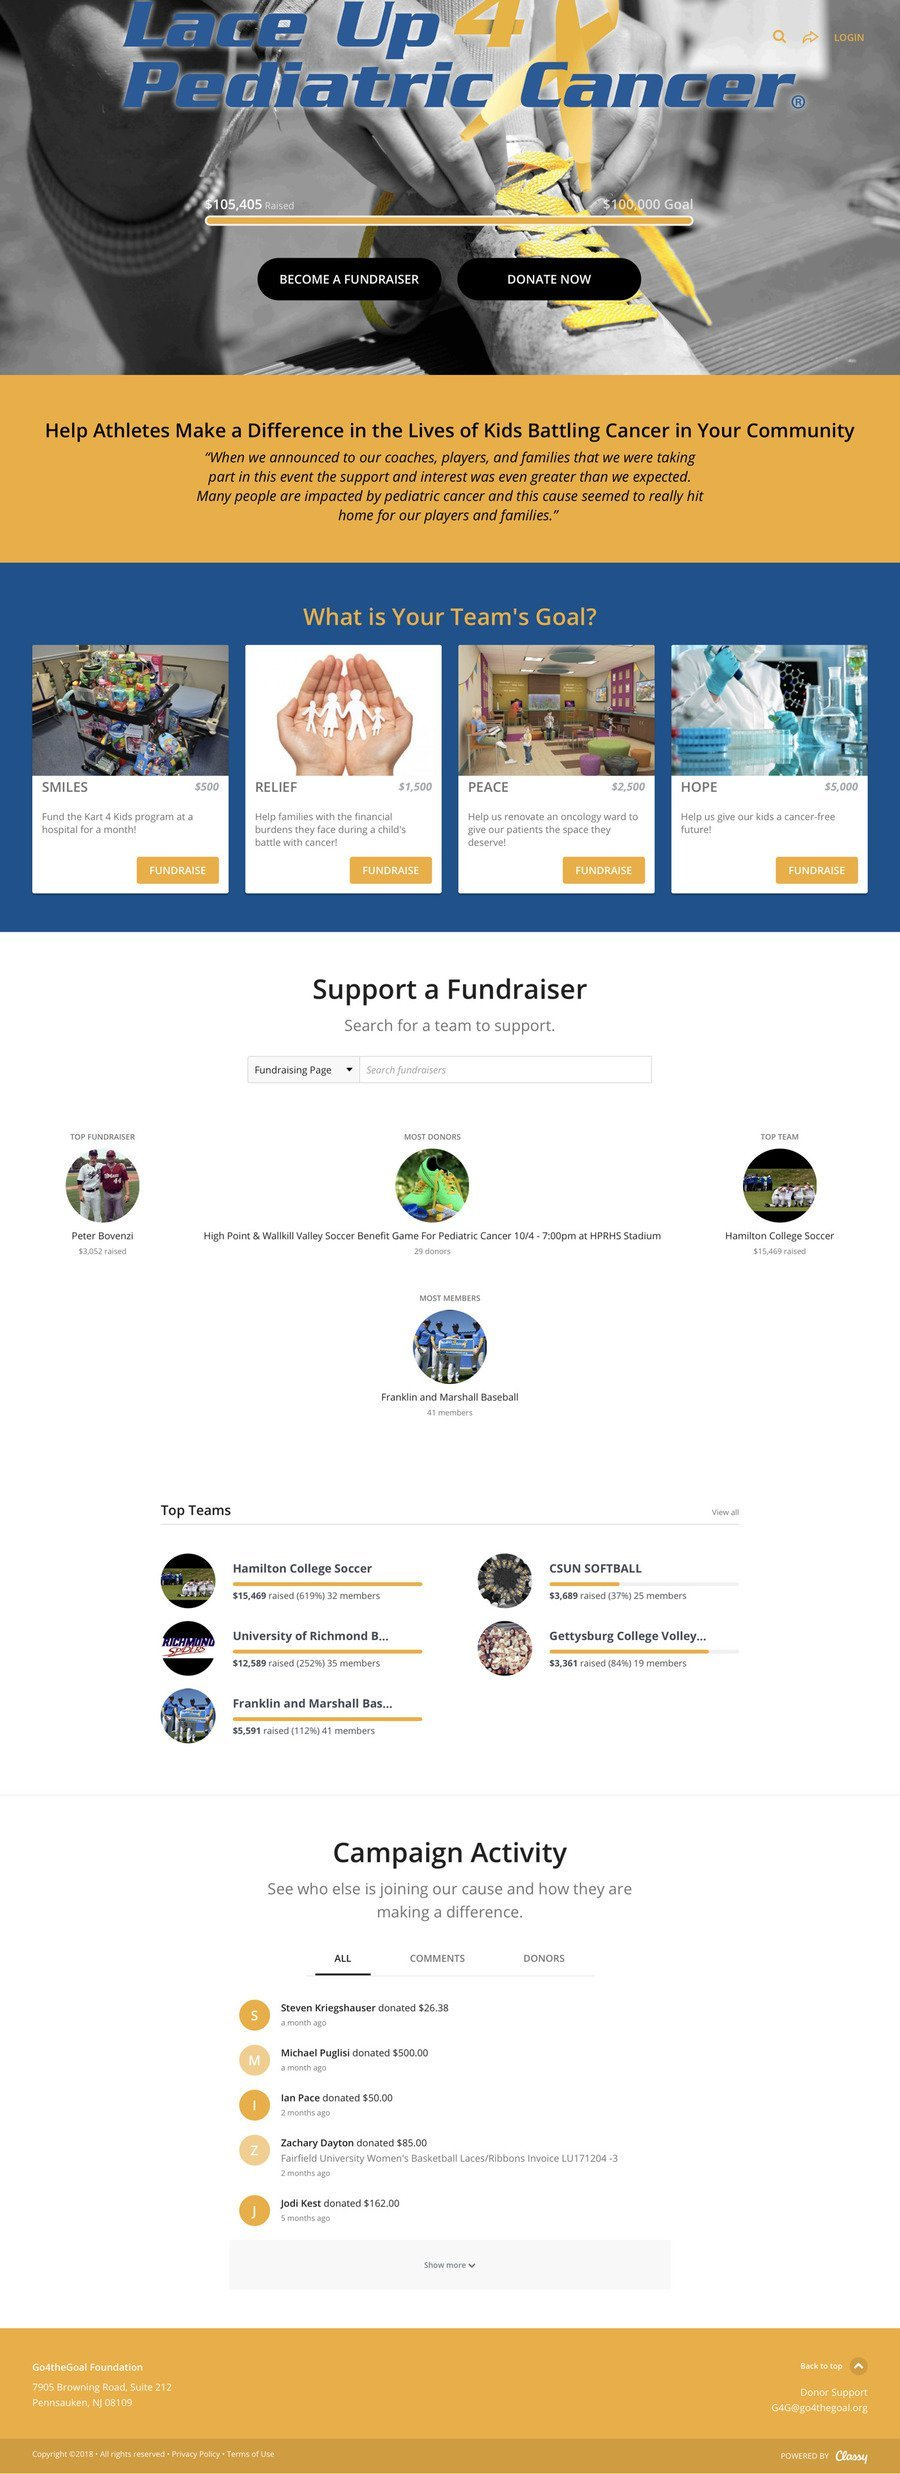 Lace Up 4 Pediatric Cancer , a Peer-to-Peer campaign on Classy.org